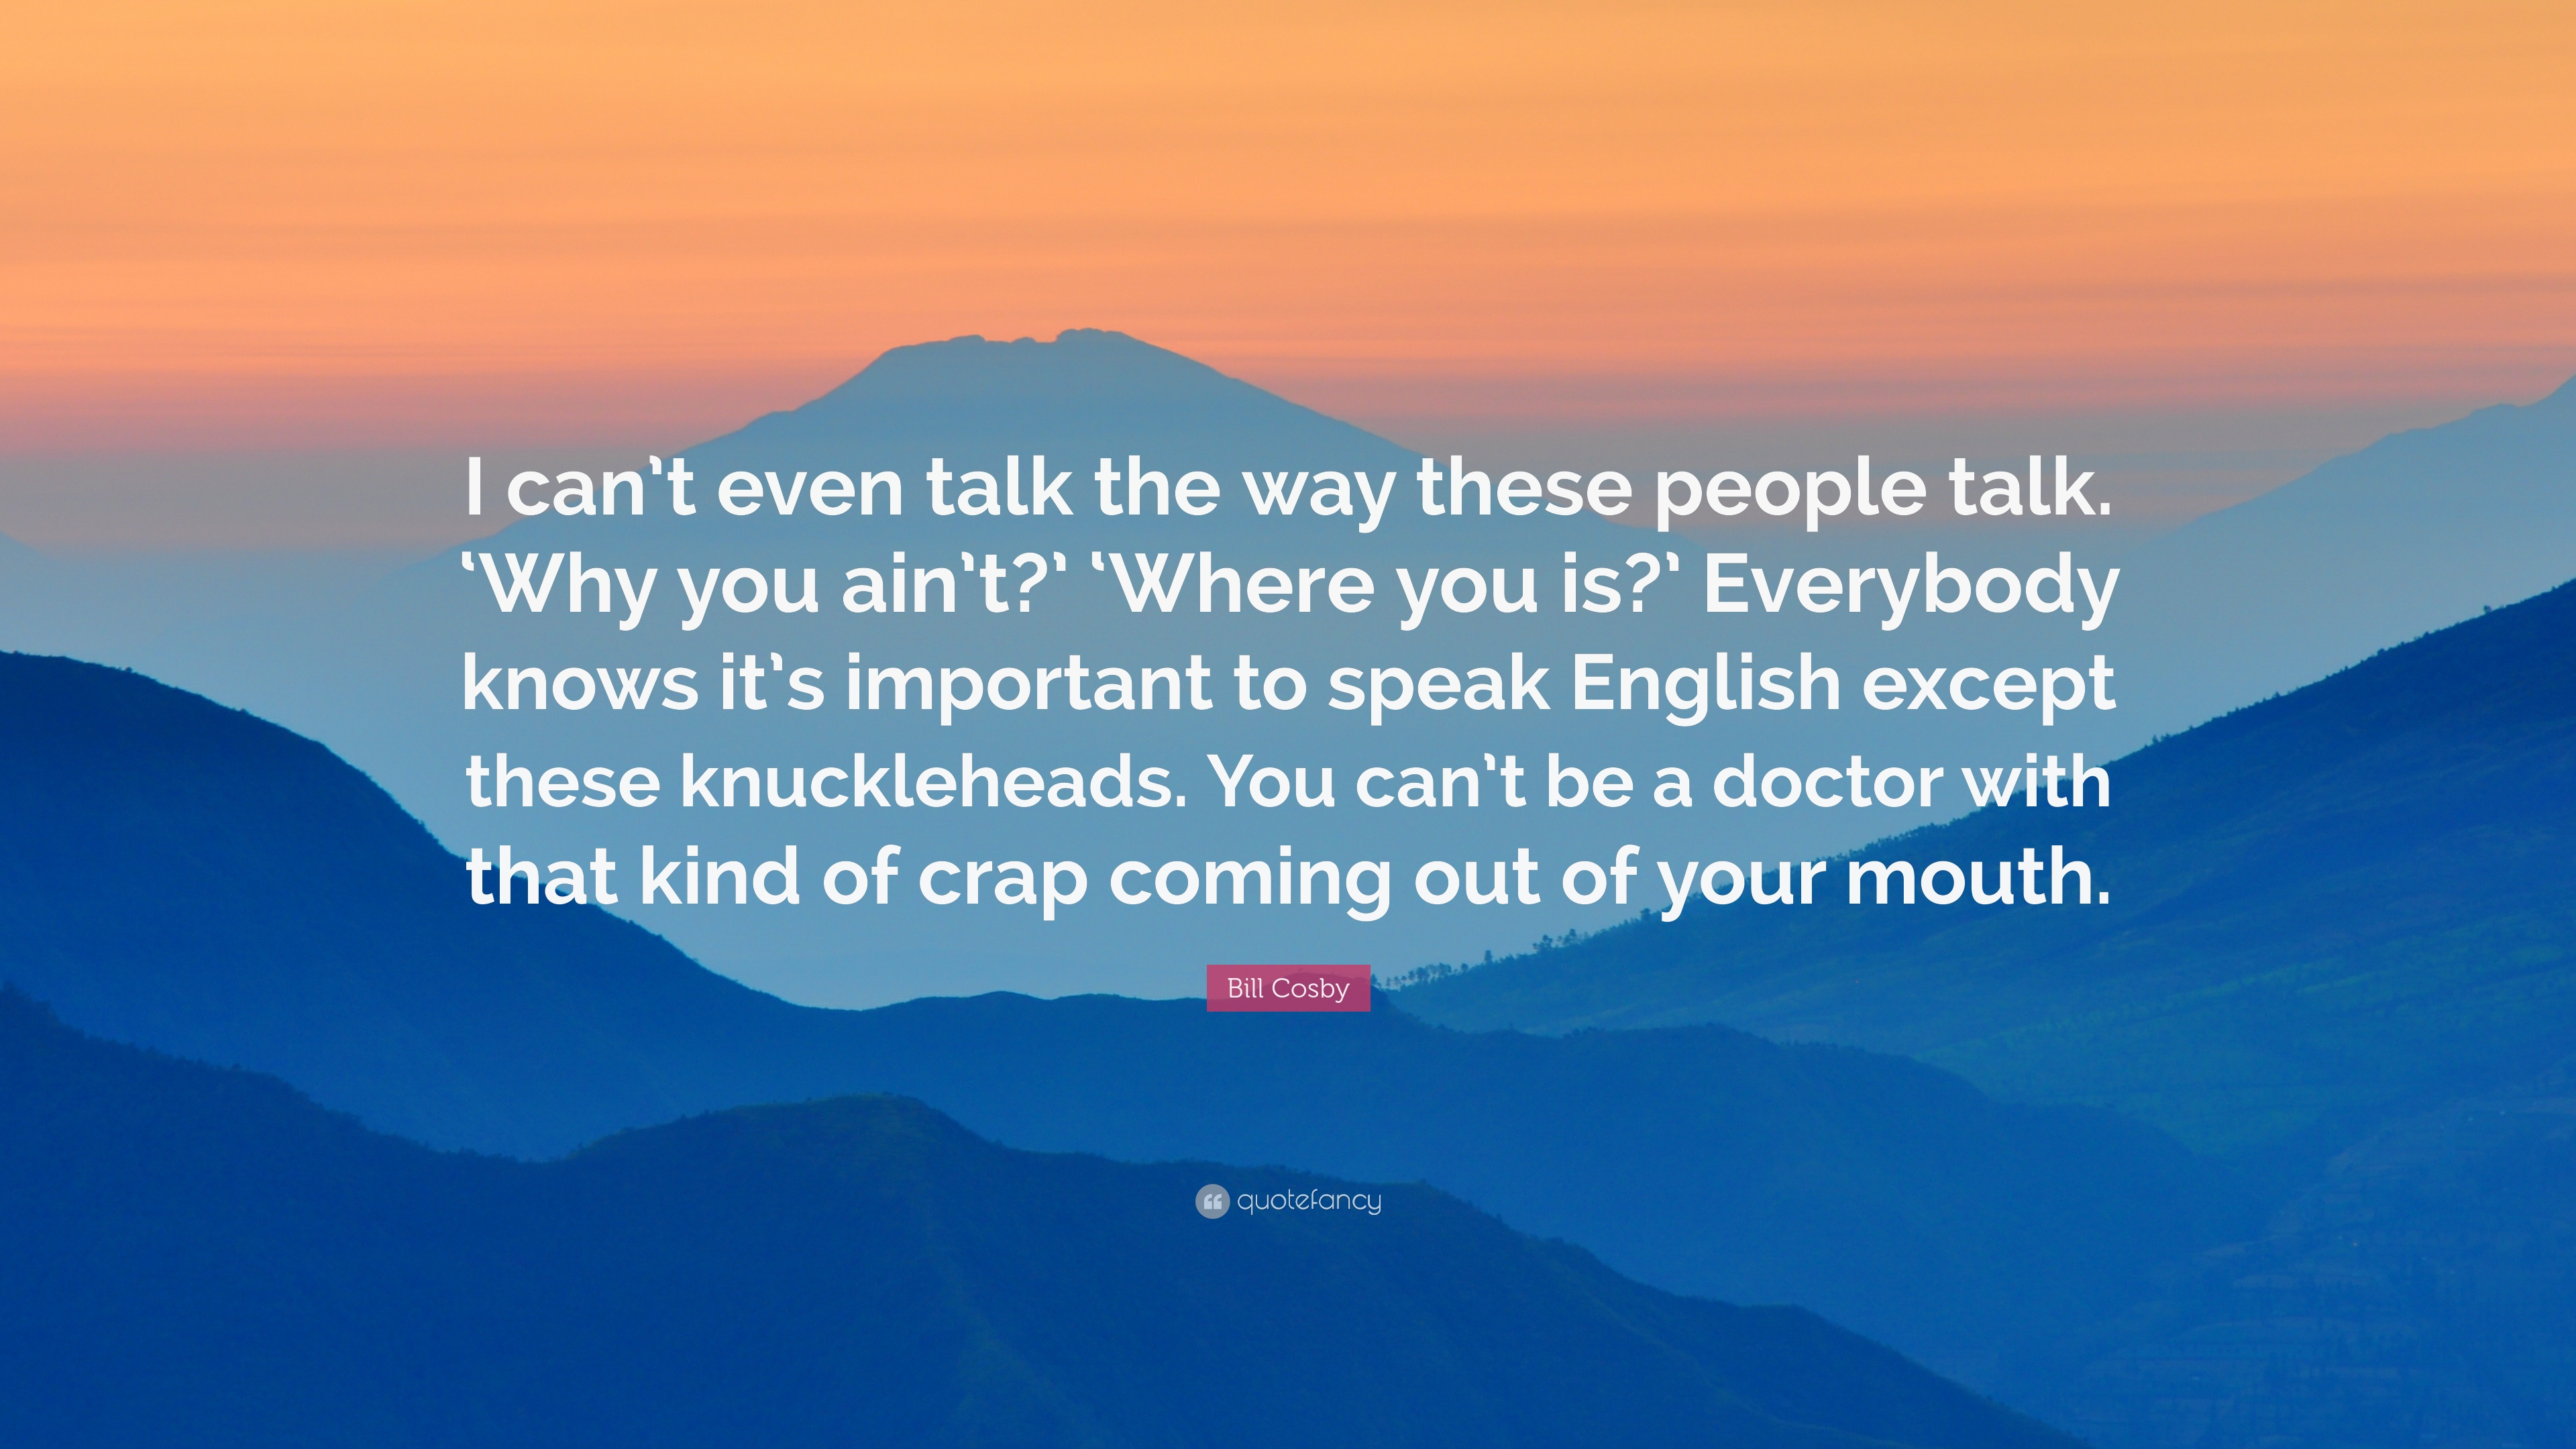 bill cosby quote i can t even talk the way these people talk bill cosby quote i can t even talk the way these people talk